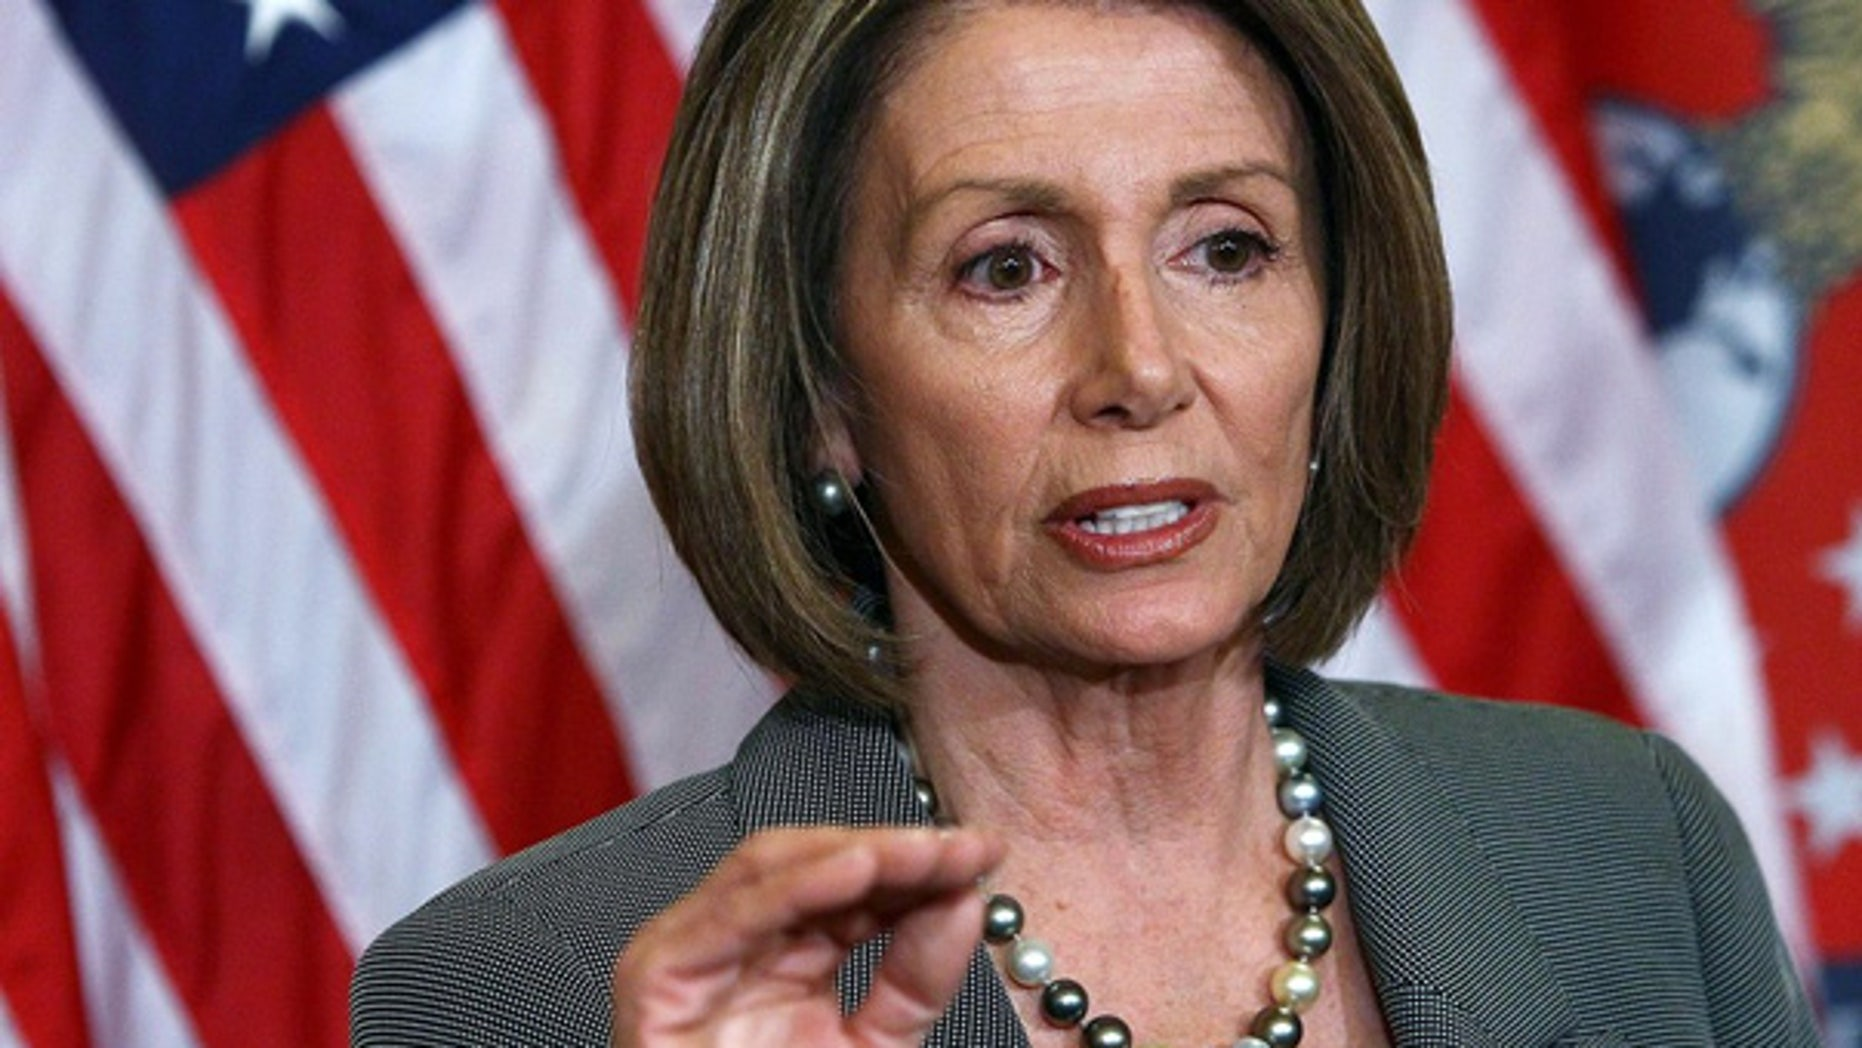 Mar. 4: Speaker of the House Nancy Pelosi answers questions during a press conference at the U.S. Capitol.